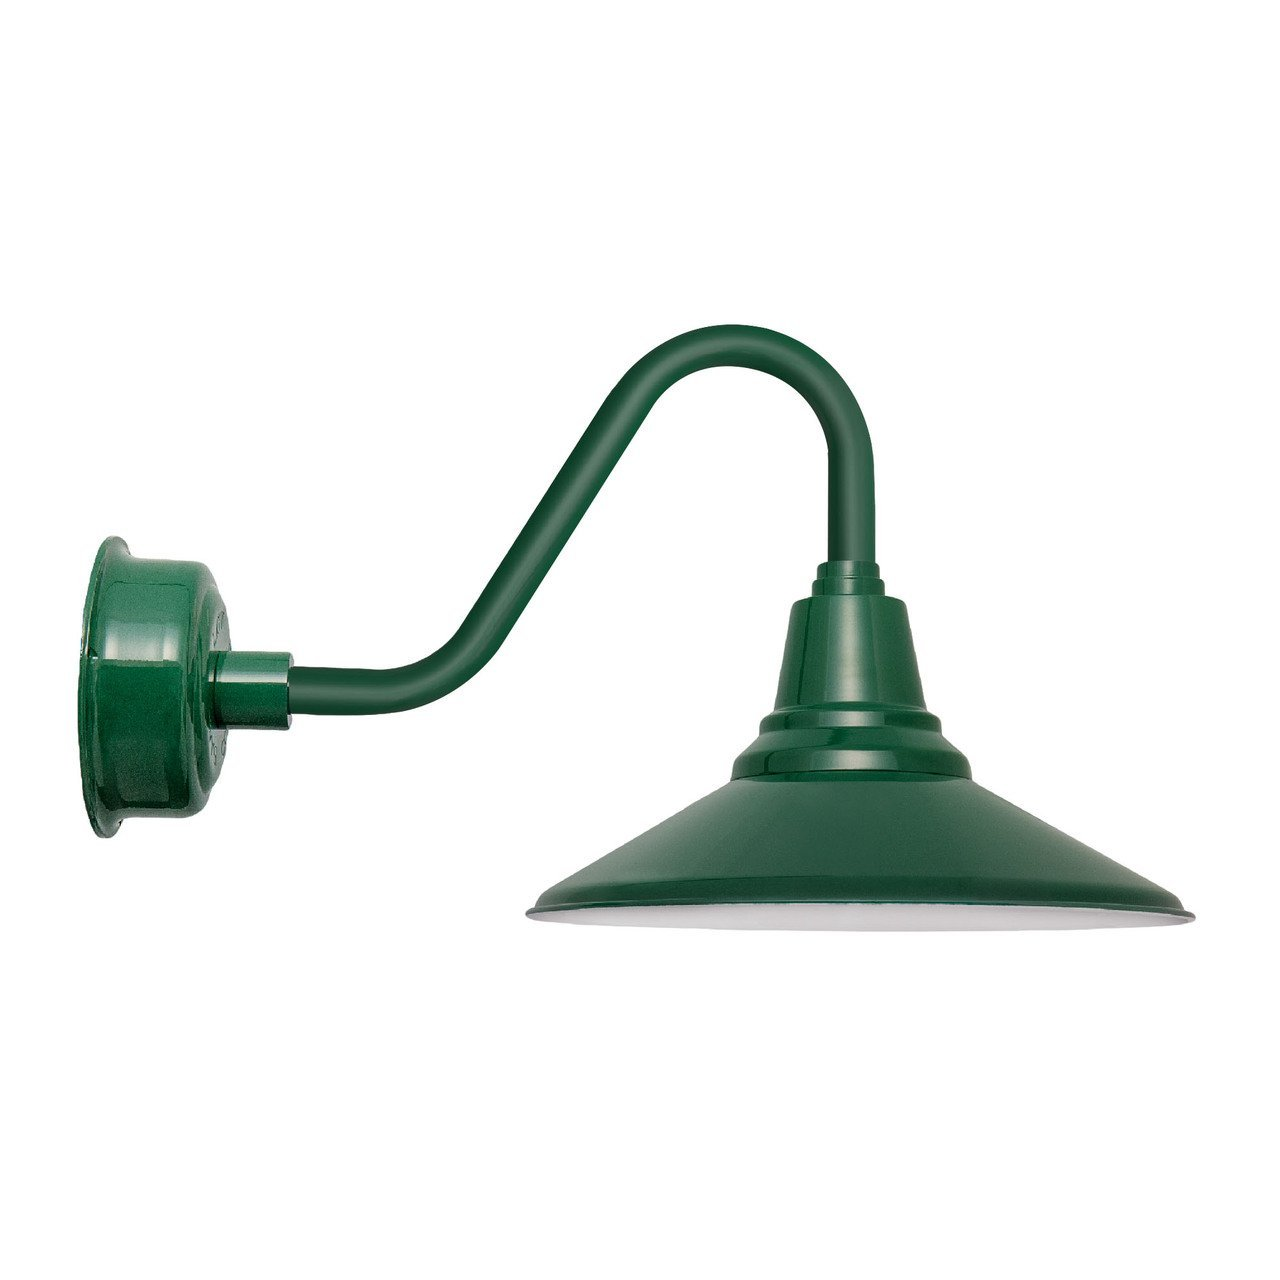 Cocoweb 16 Inch Vintage Green Calla LED Wall Mounted